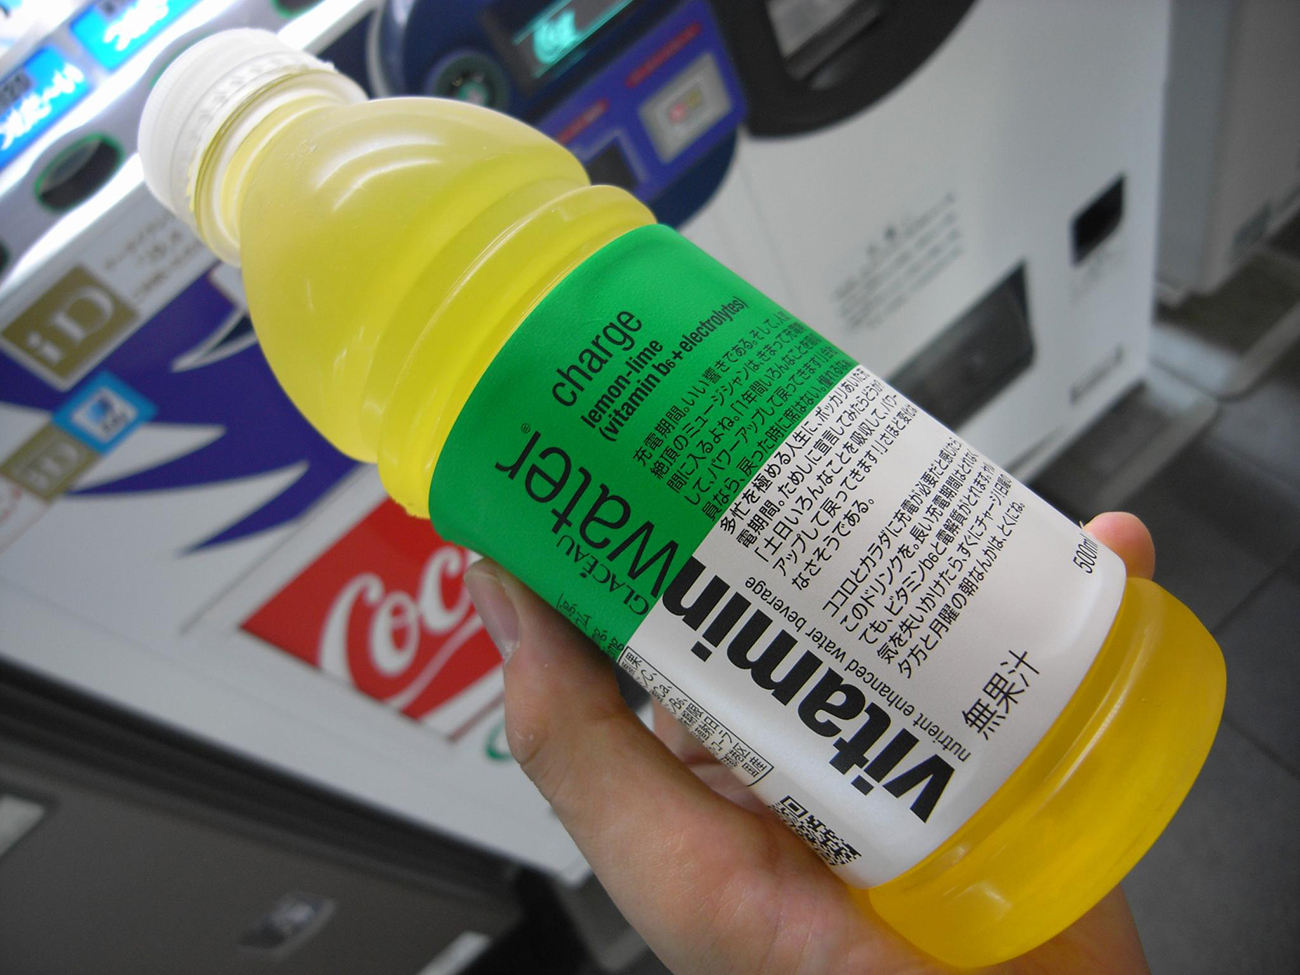 A photograph shows a person holding a bottle of Vitamin water. The label is written in both English and Japanese lettering.